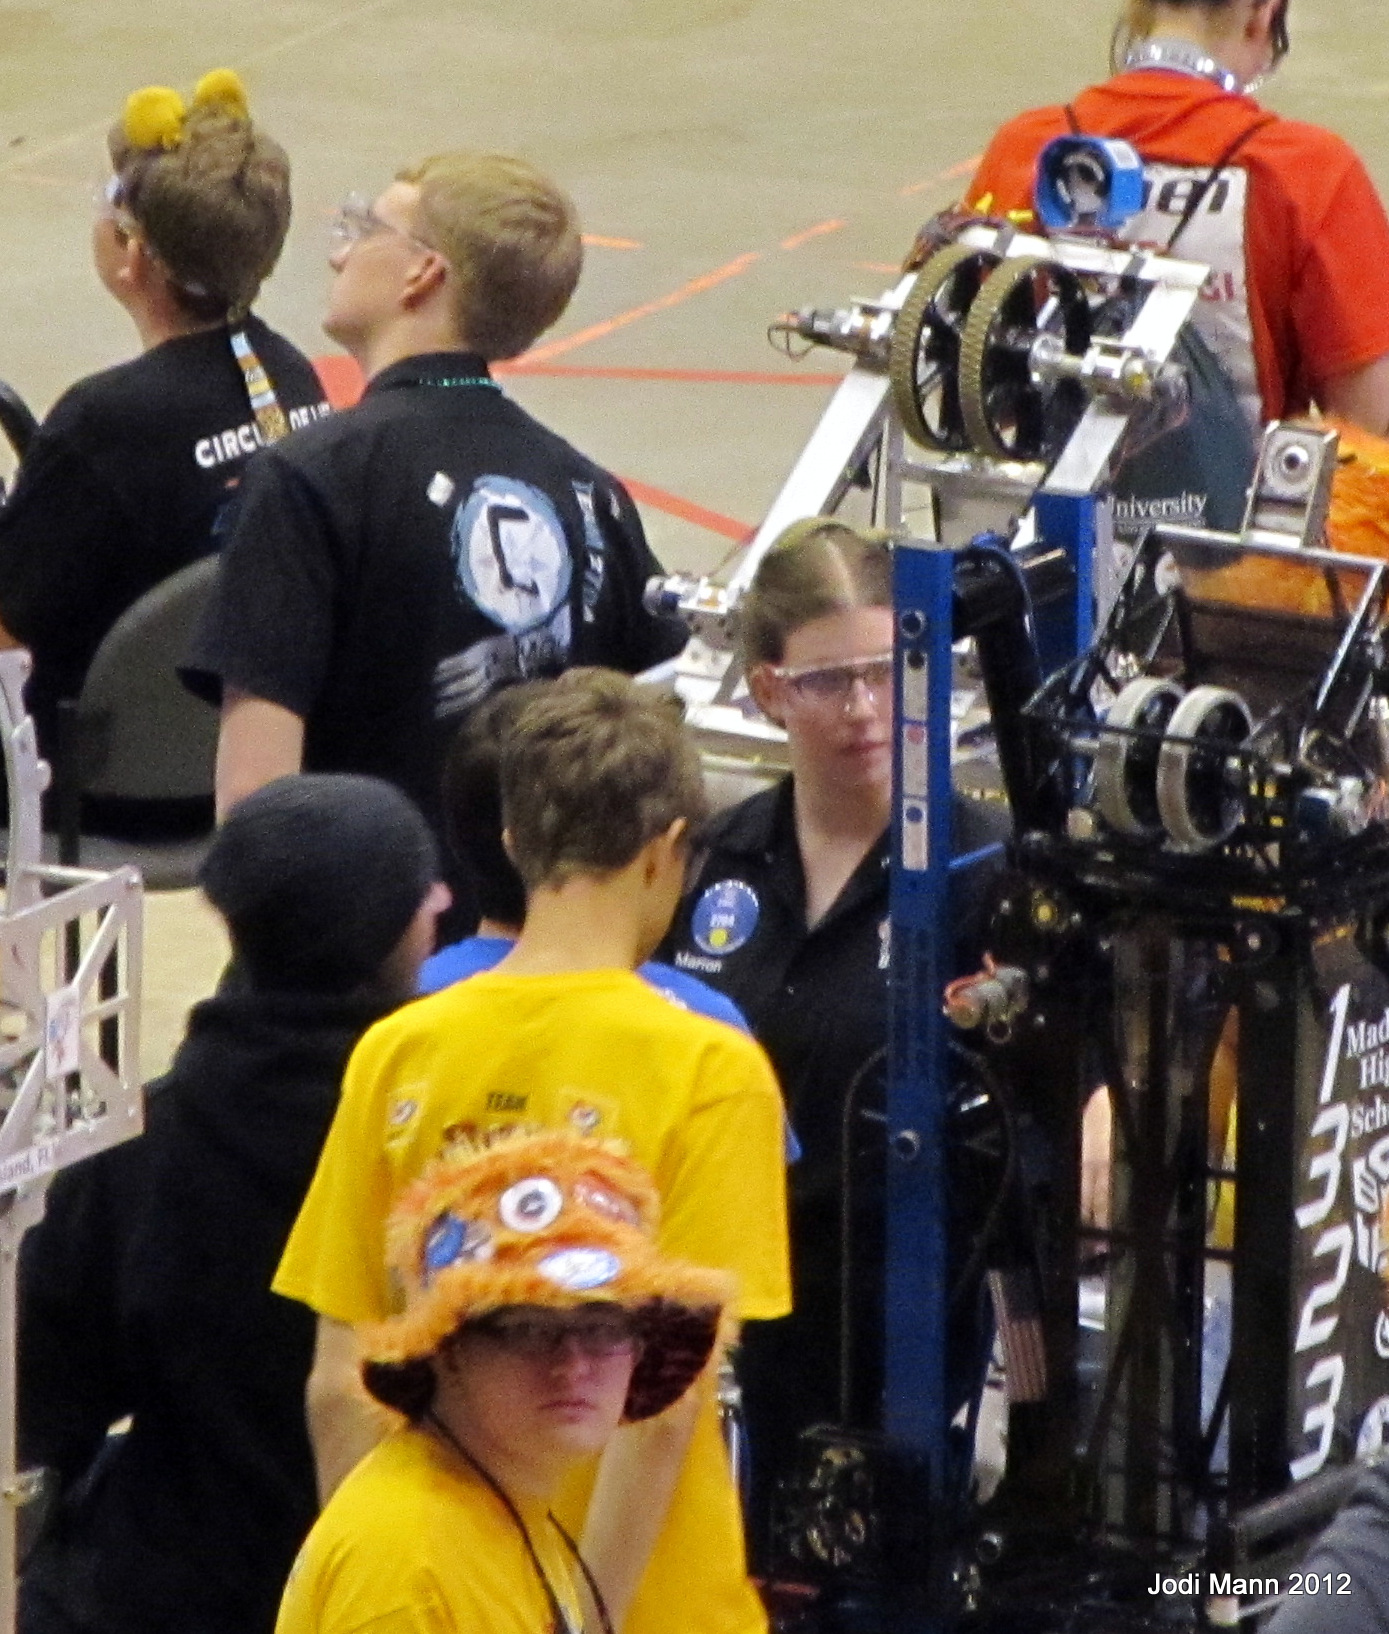 Students checking out a robot